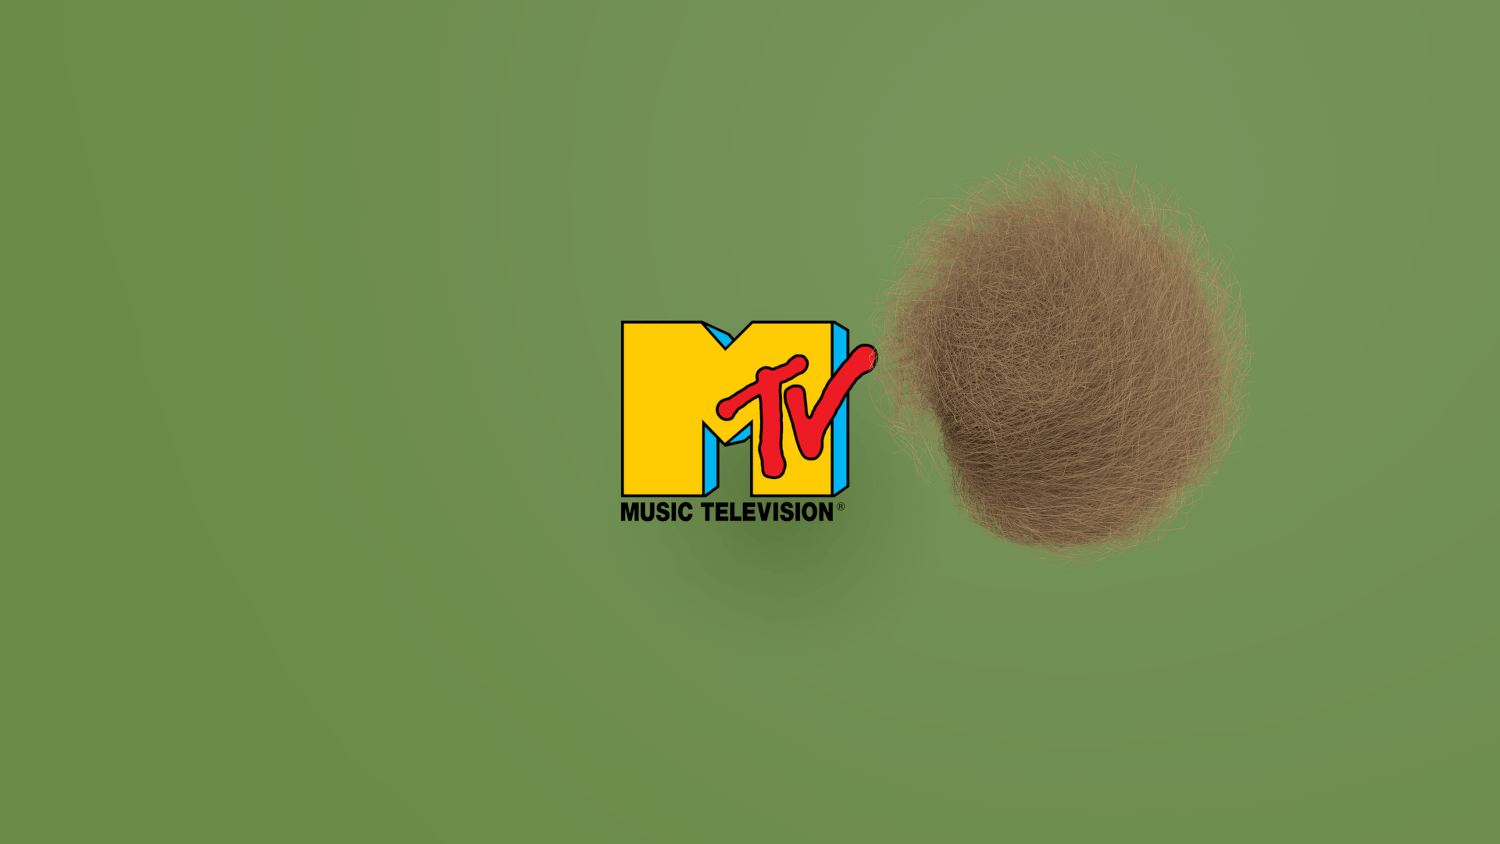 Portfolio: MTV animated bumper – Dancing hair ball